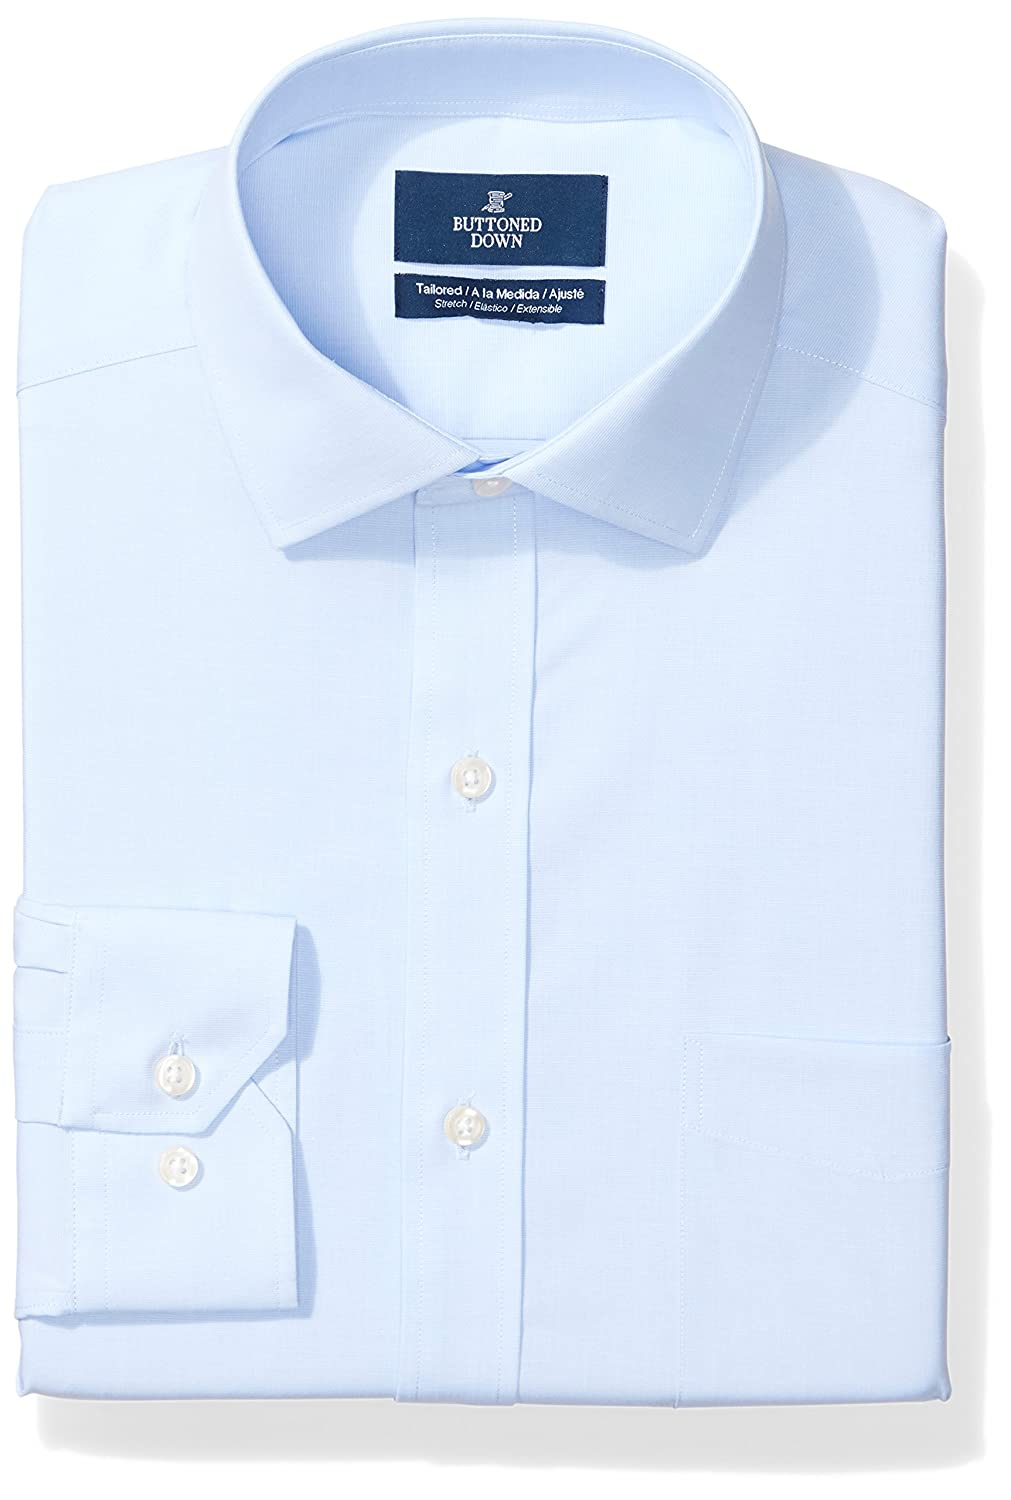 Buttoned Down Men's Tailored Fit Stretch Poplin Non-Iron Dress Shirt MBD30022